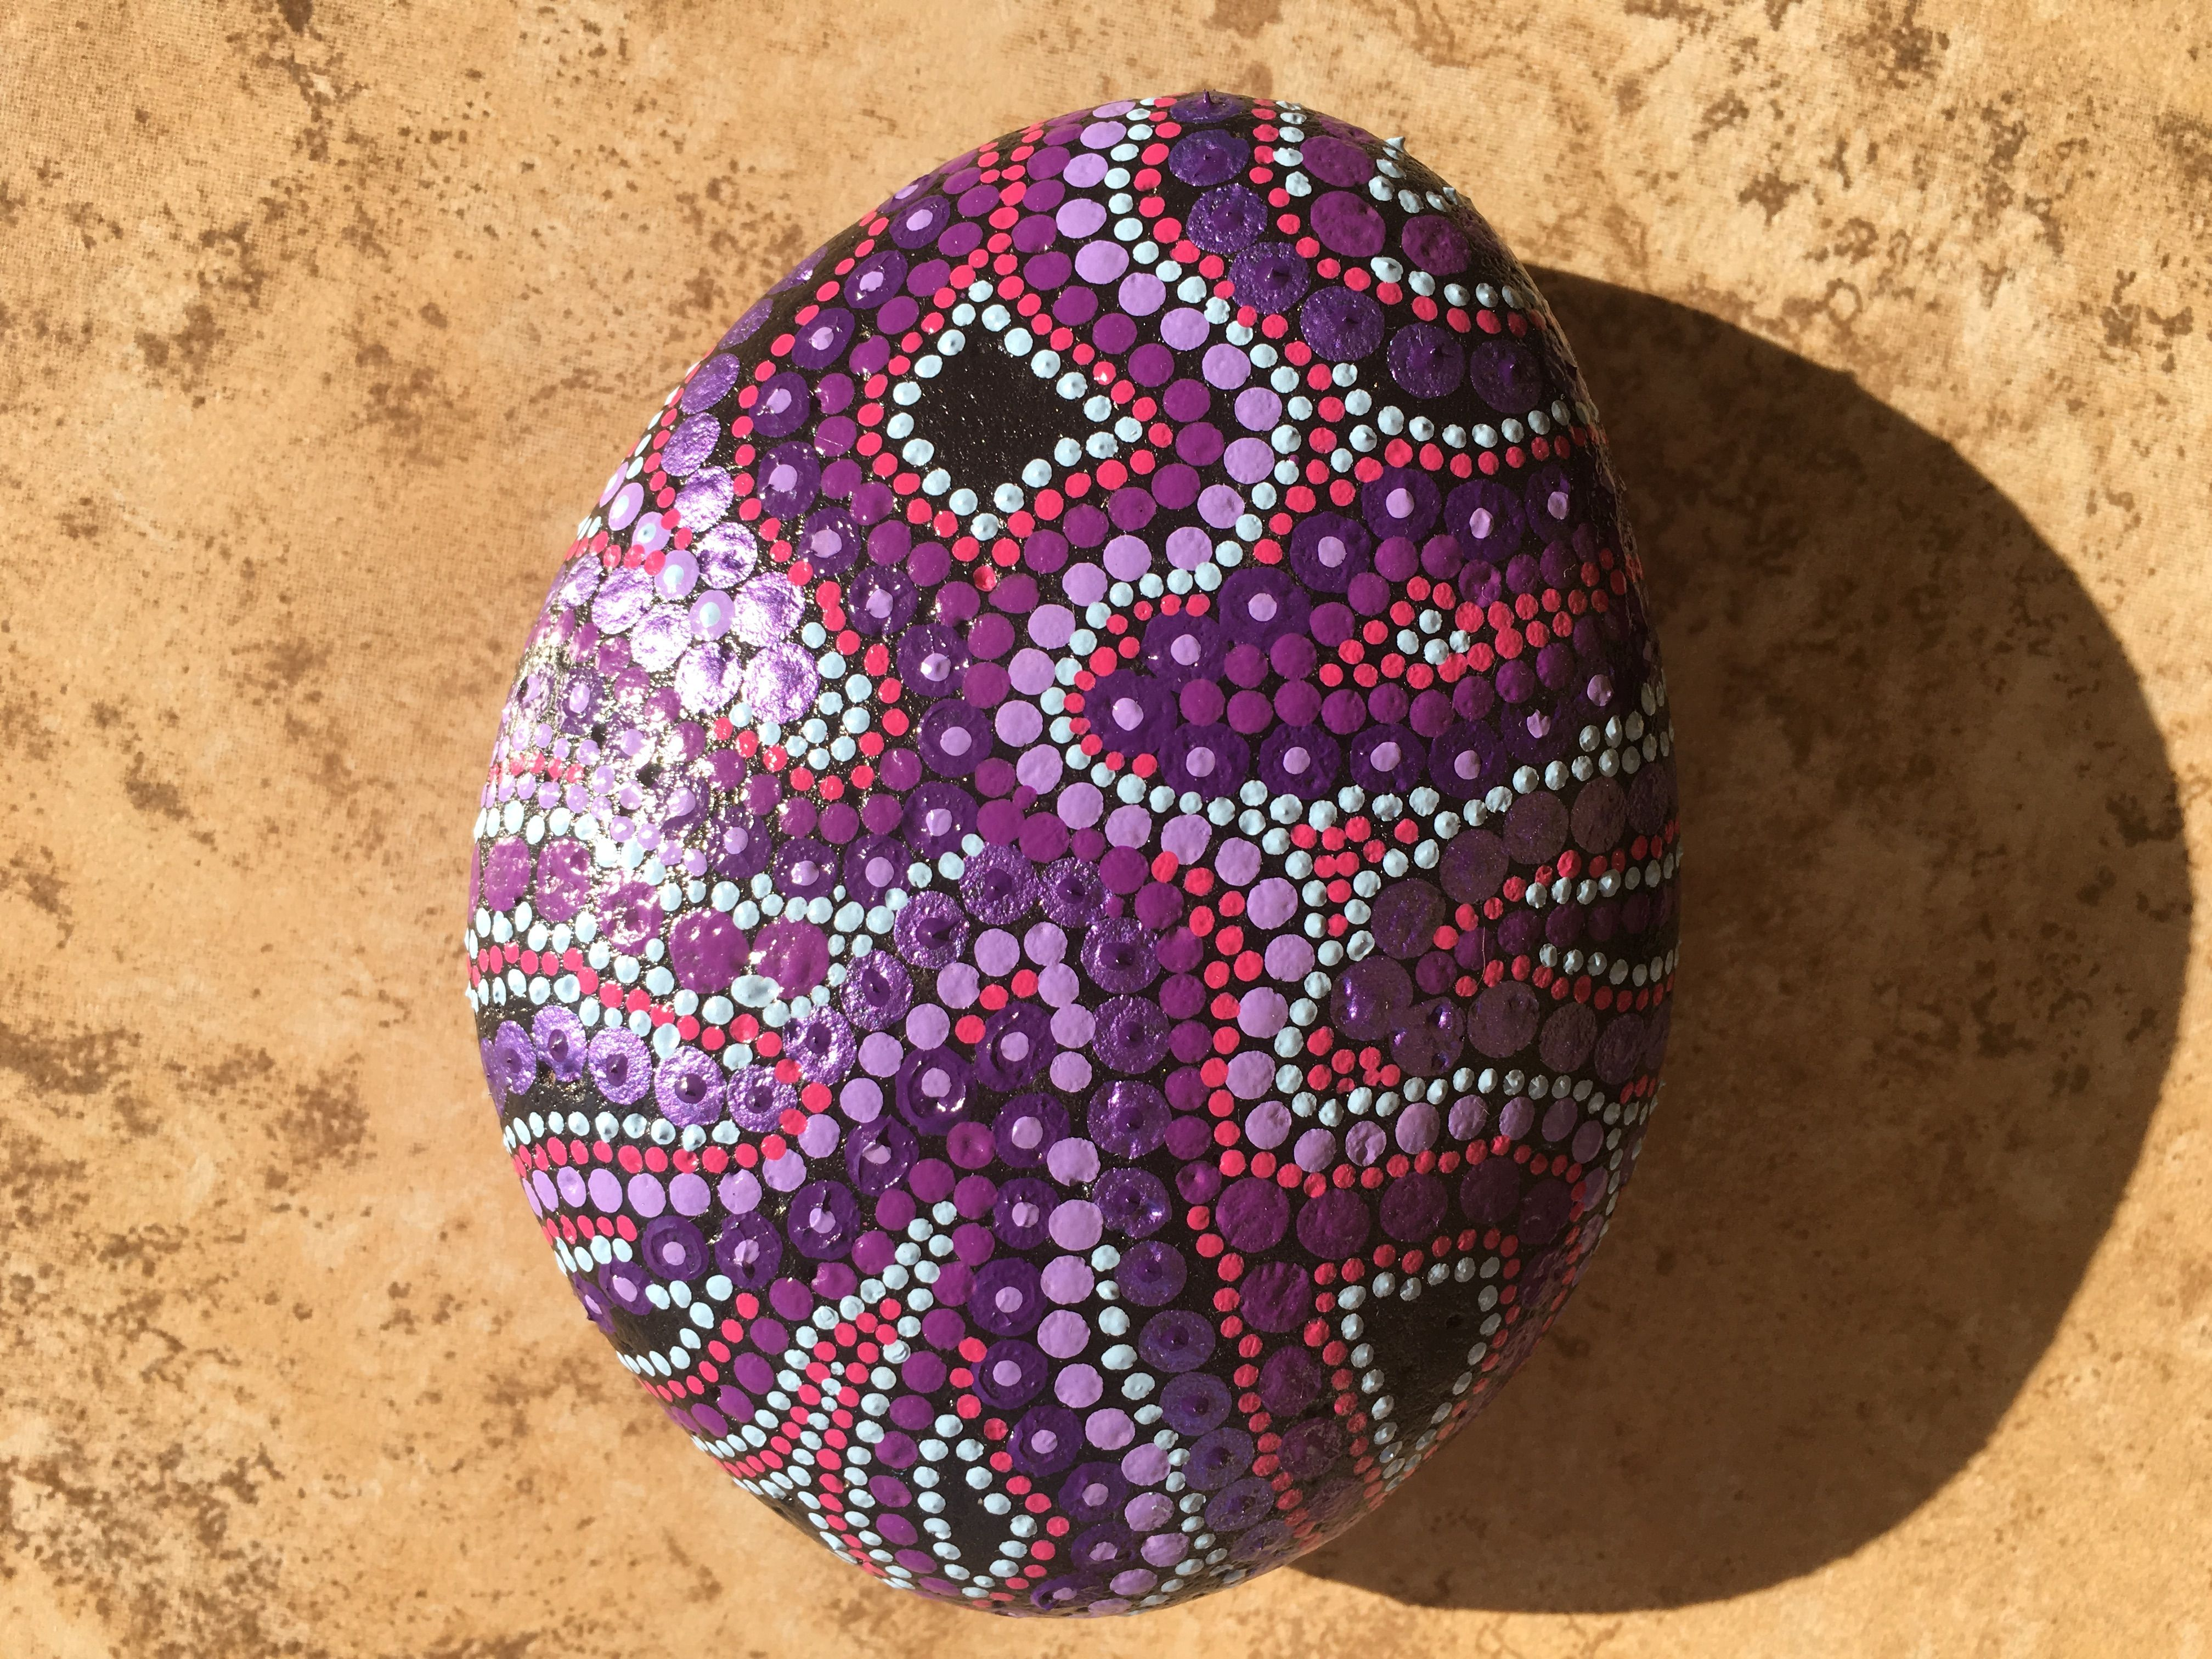 Pin By Kat Widmer On Painted Rocks In